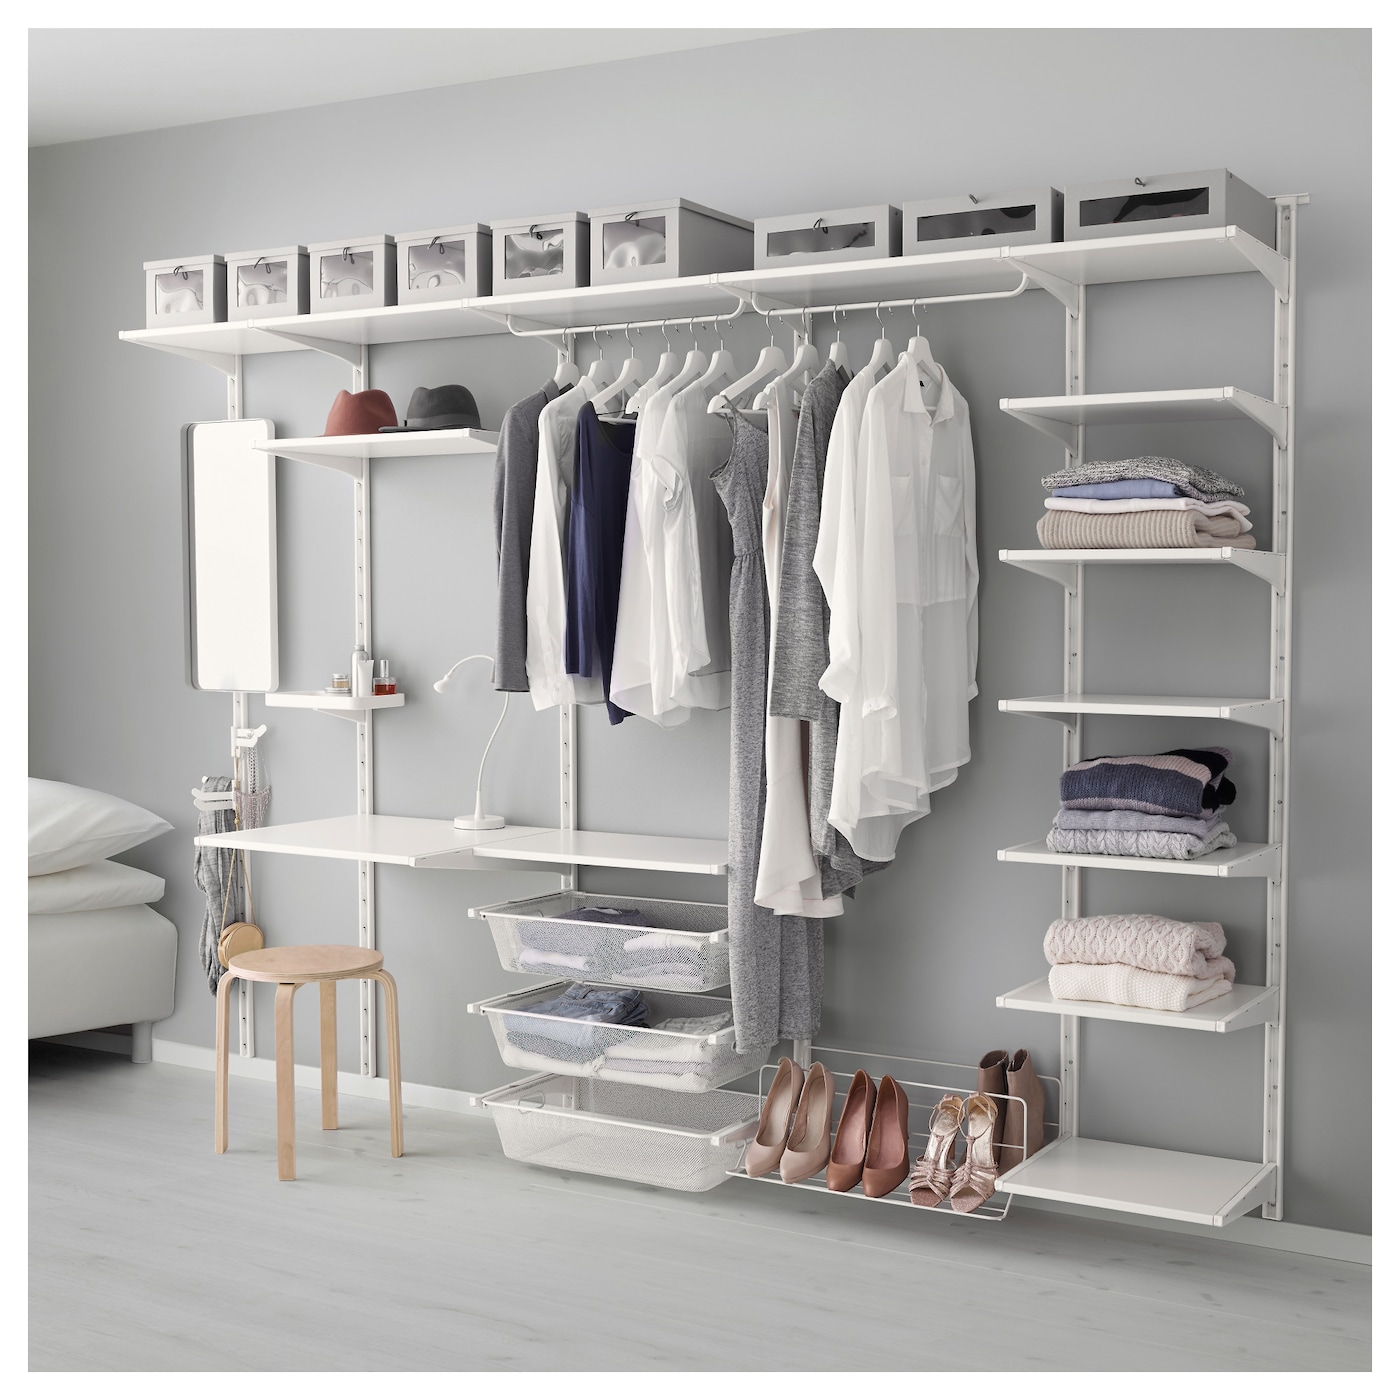 ikea algot planner with Algot Wall Upright Shelf Triple Hook White Spr 49165155 on Algot Wall Upright Shelves Rod White Spr 39165245 additionally Algot Wall Upright Shoe Organiser White Spr 59068521 additionally Algot Frame 2 Mesh Baskets Top Shelf White Spr 89183911 besides Algot Wall Upright Shelves White Spr 19903787 further Guardarropa.